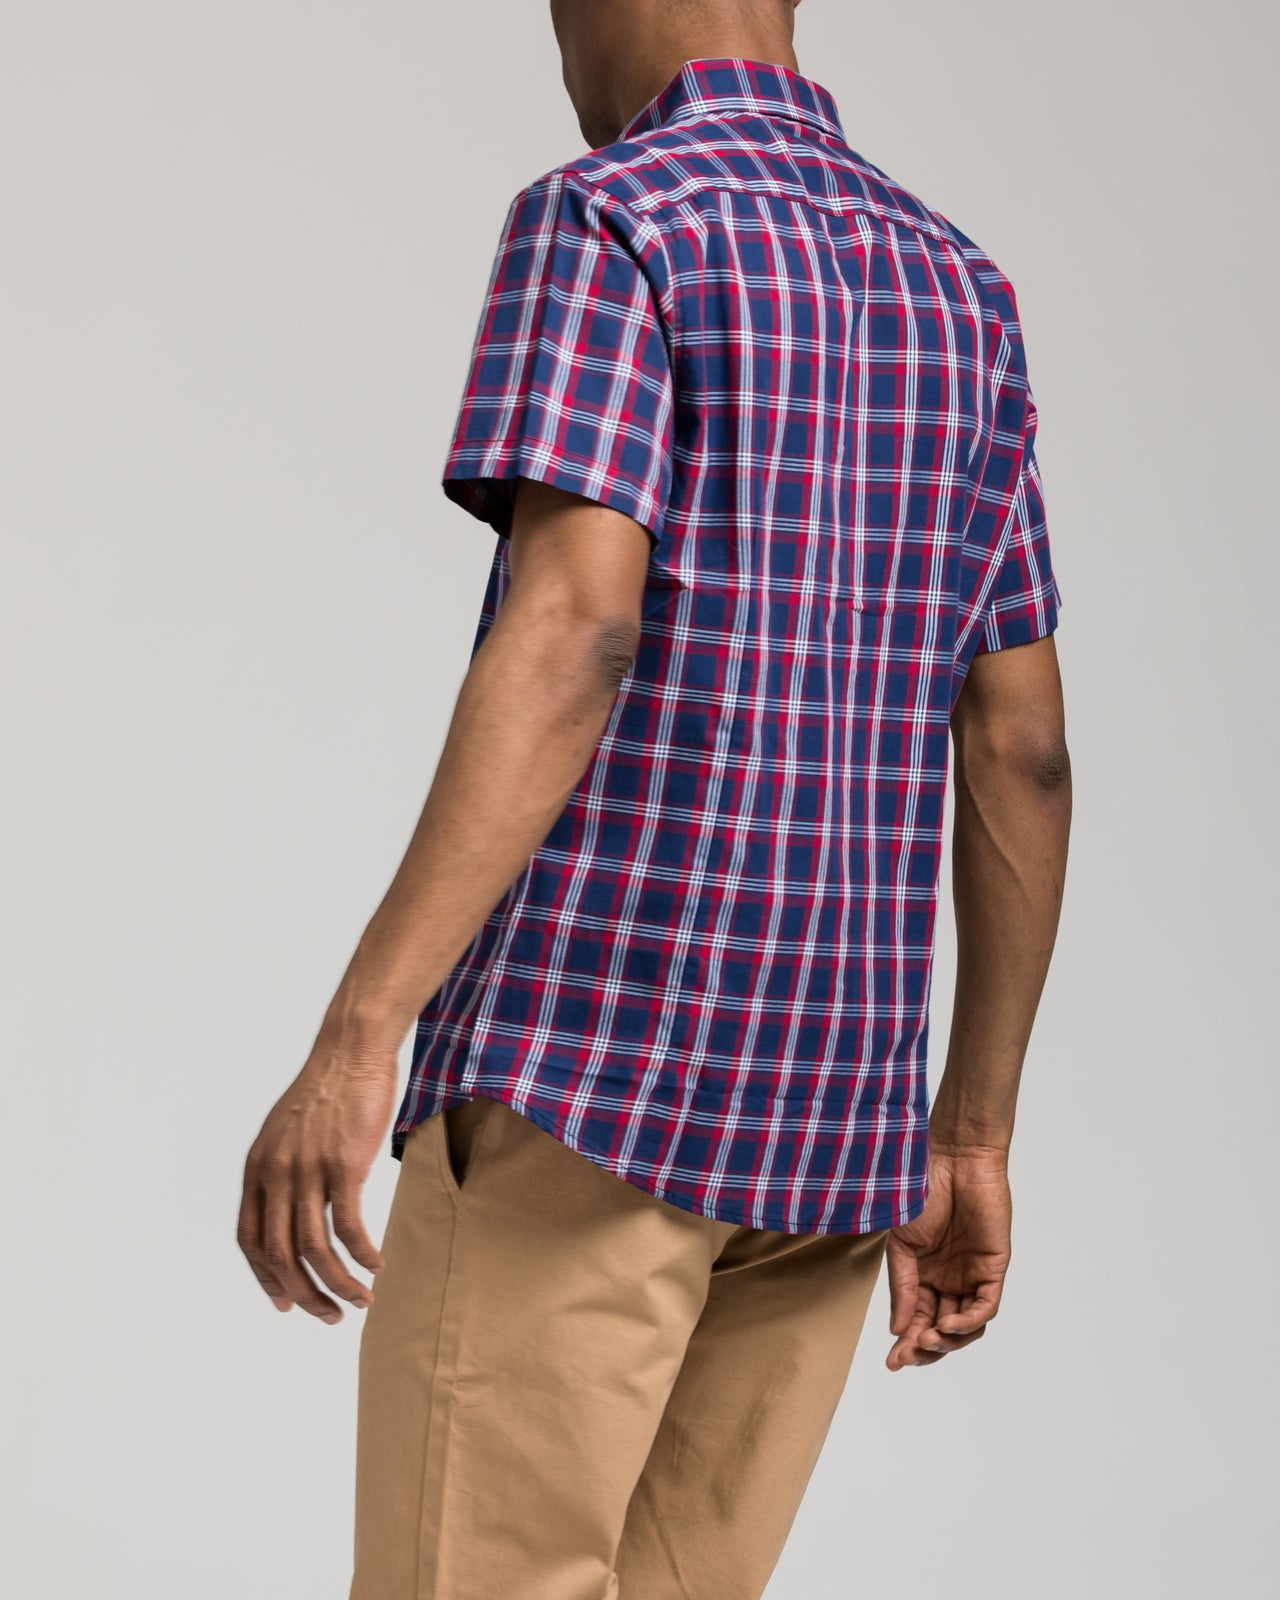 Short Sleeve Plaid Shirt - Color: Red/Navy | Blue